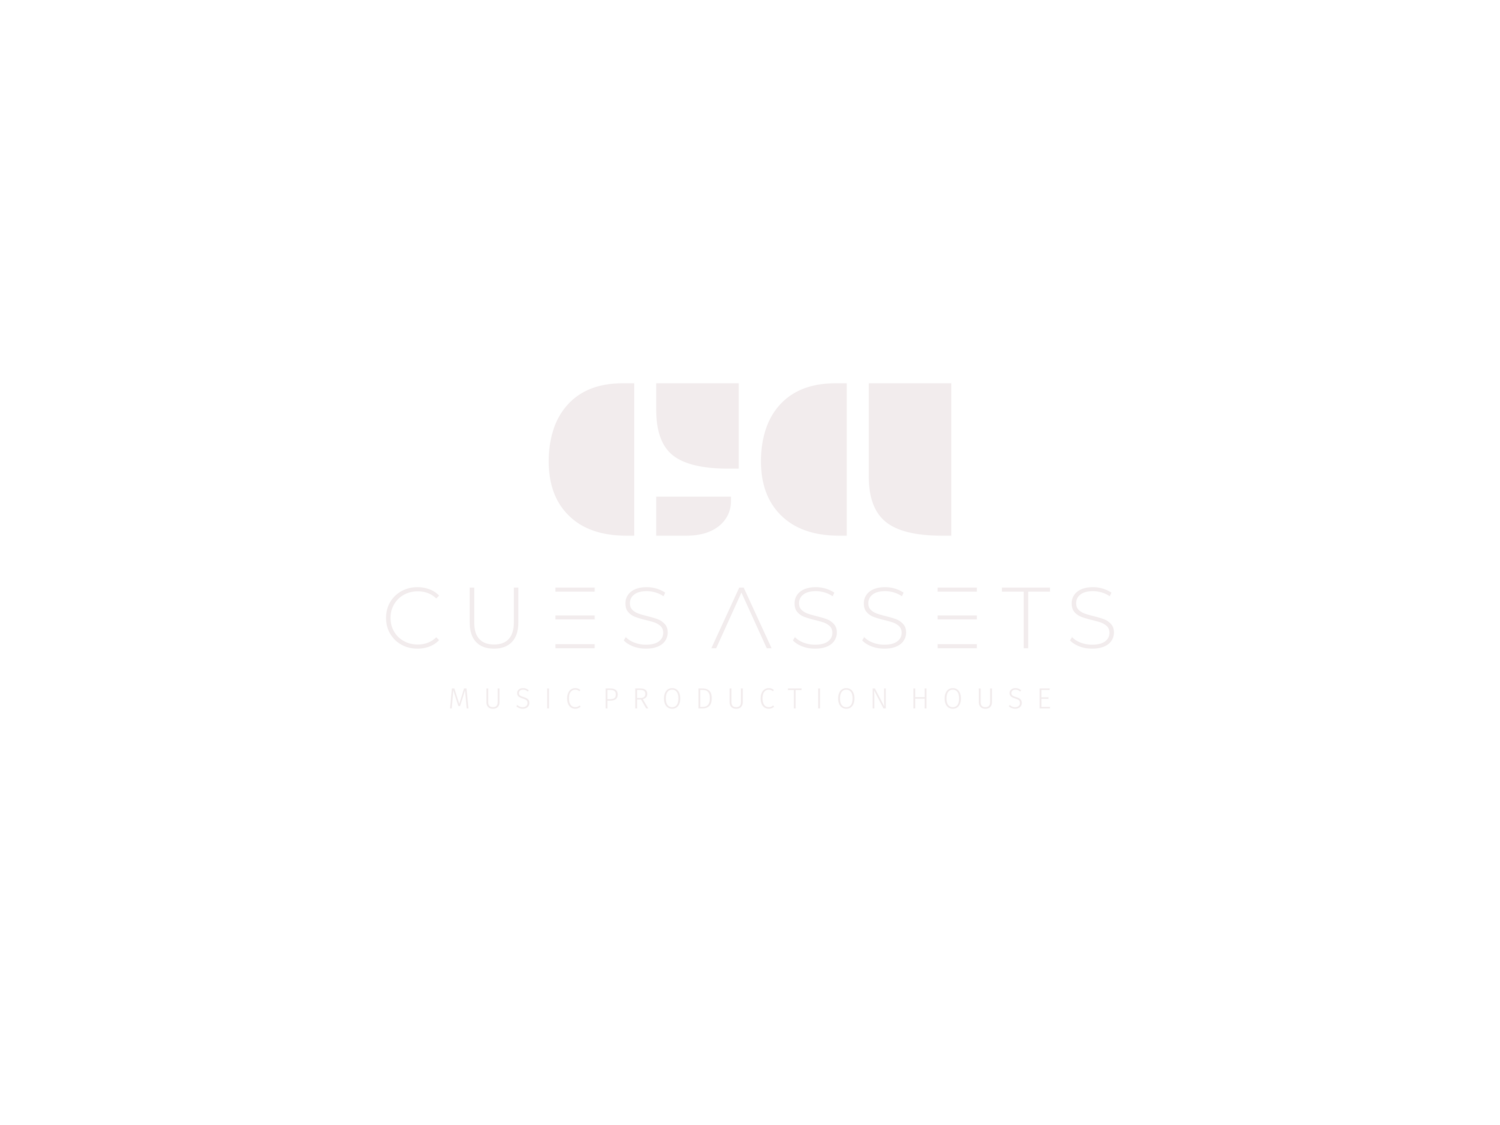 CUES ASSETS